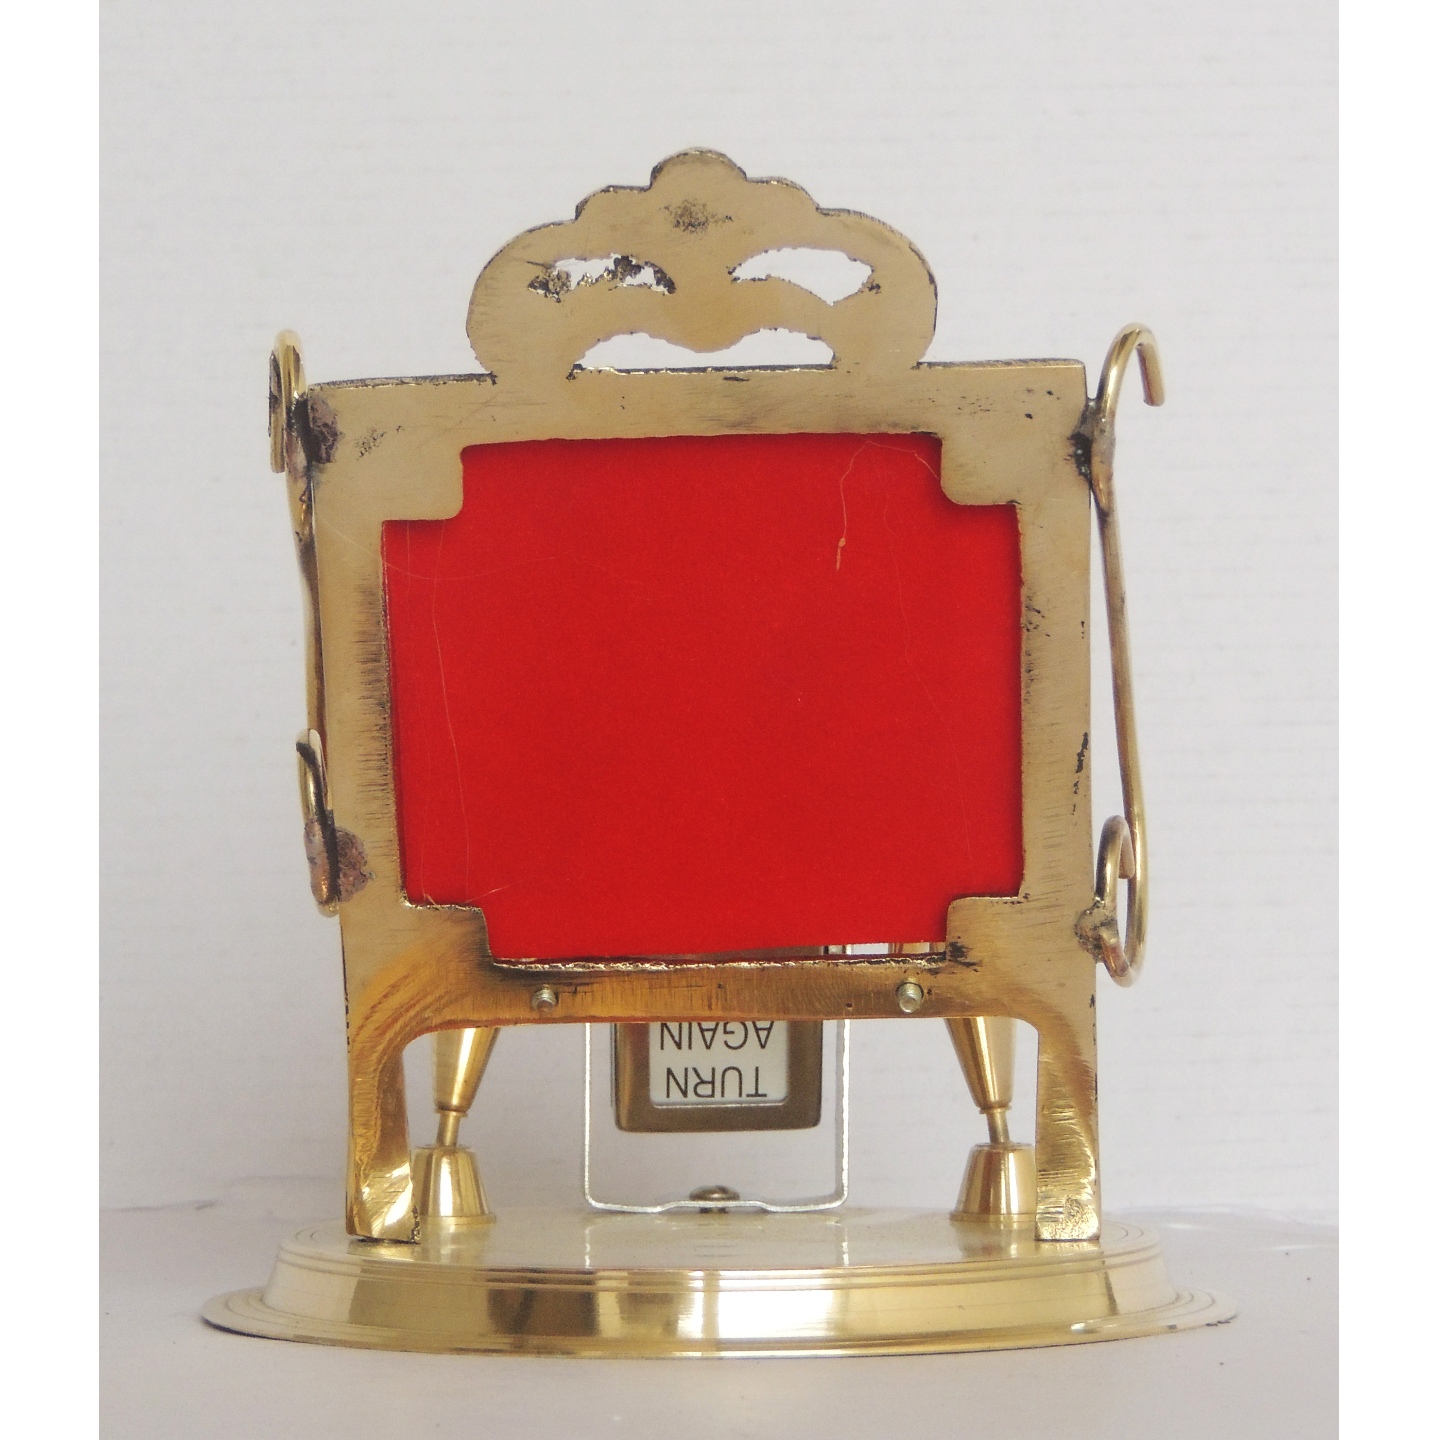 Brass Pen And Mobile Stand With Date Display - 5.5*4.8*5.2 Inch  (Z259 A)